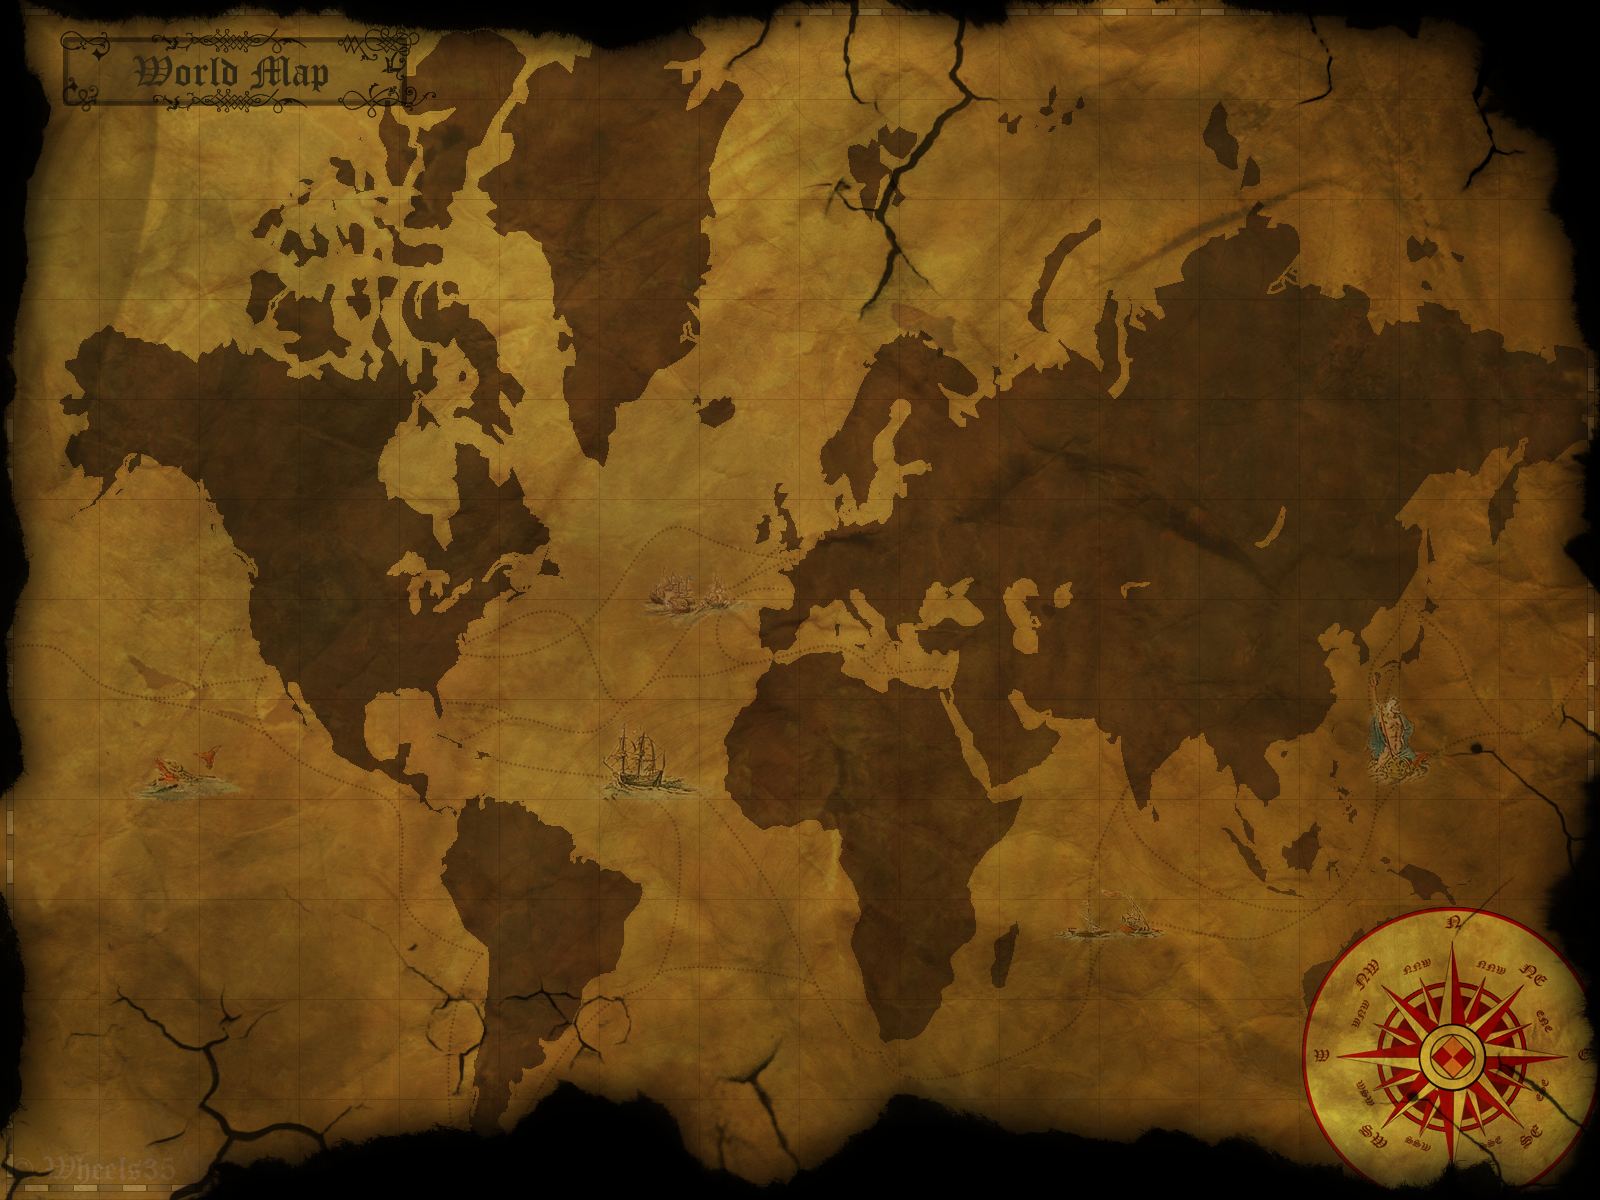 Old world style map by wheels35 on deviantart old world style map by wheels35 old world style map by wheels35 gumiabroncs Gallery